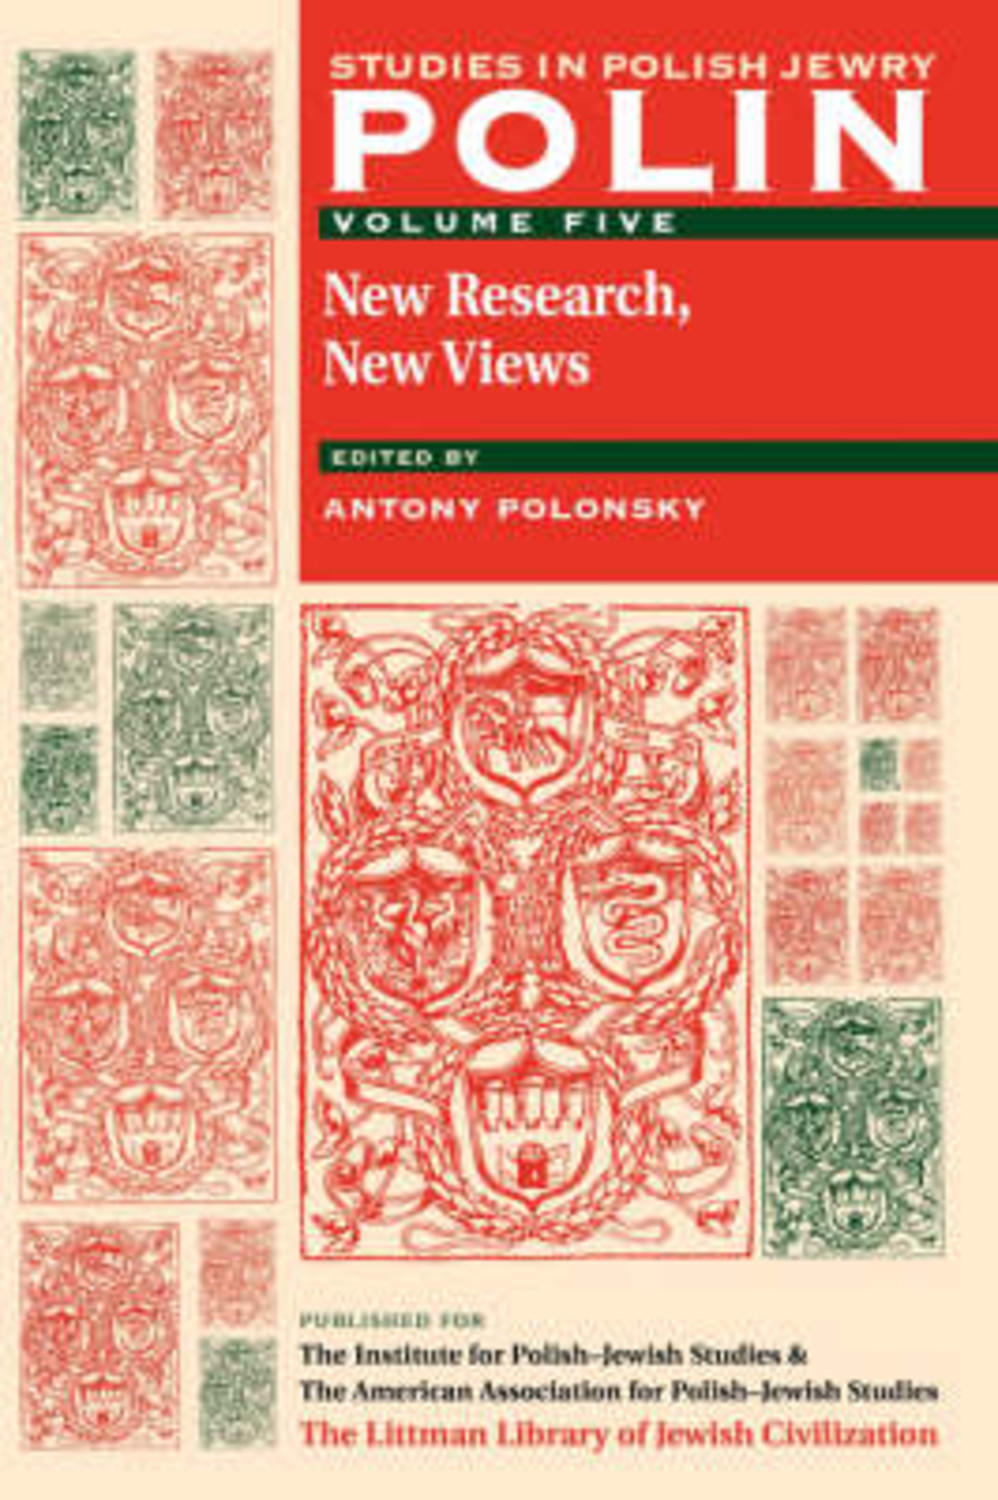 Polin: Studies in Polish Jewry Volume 5